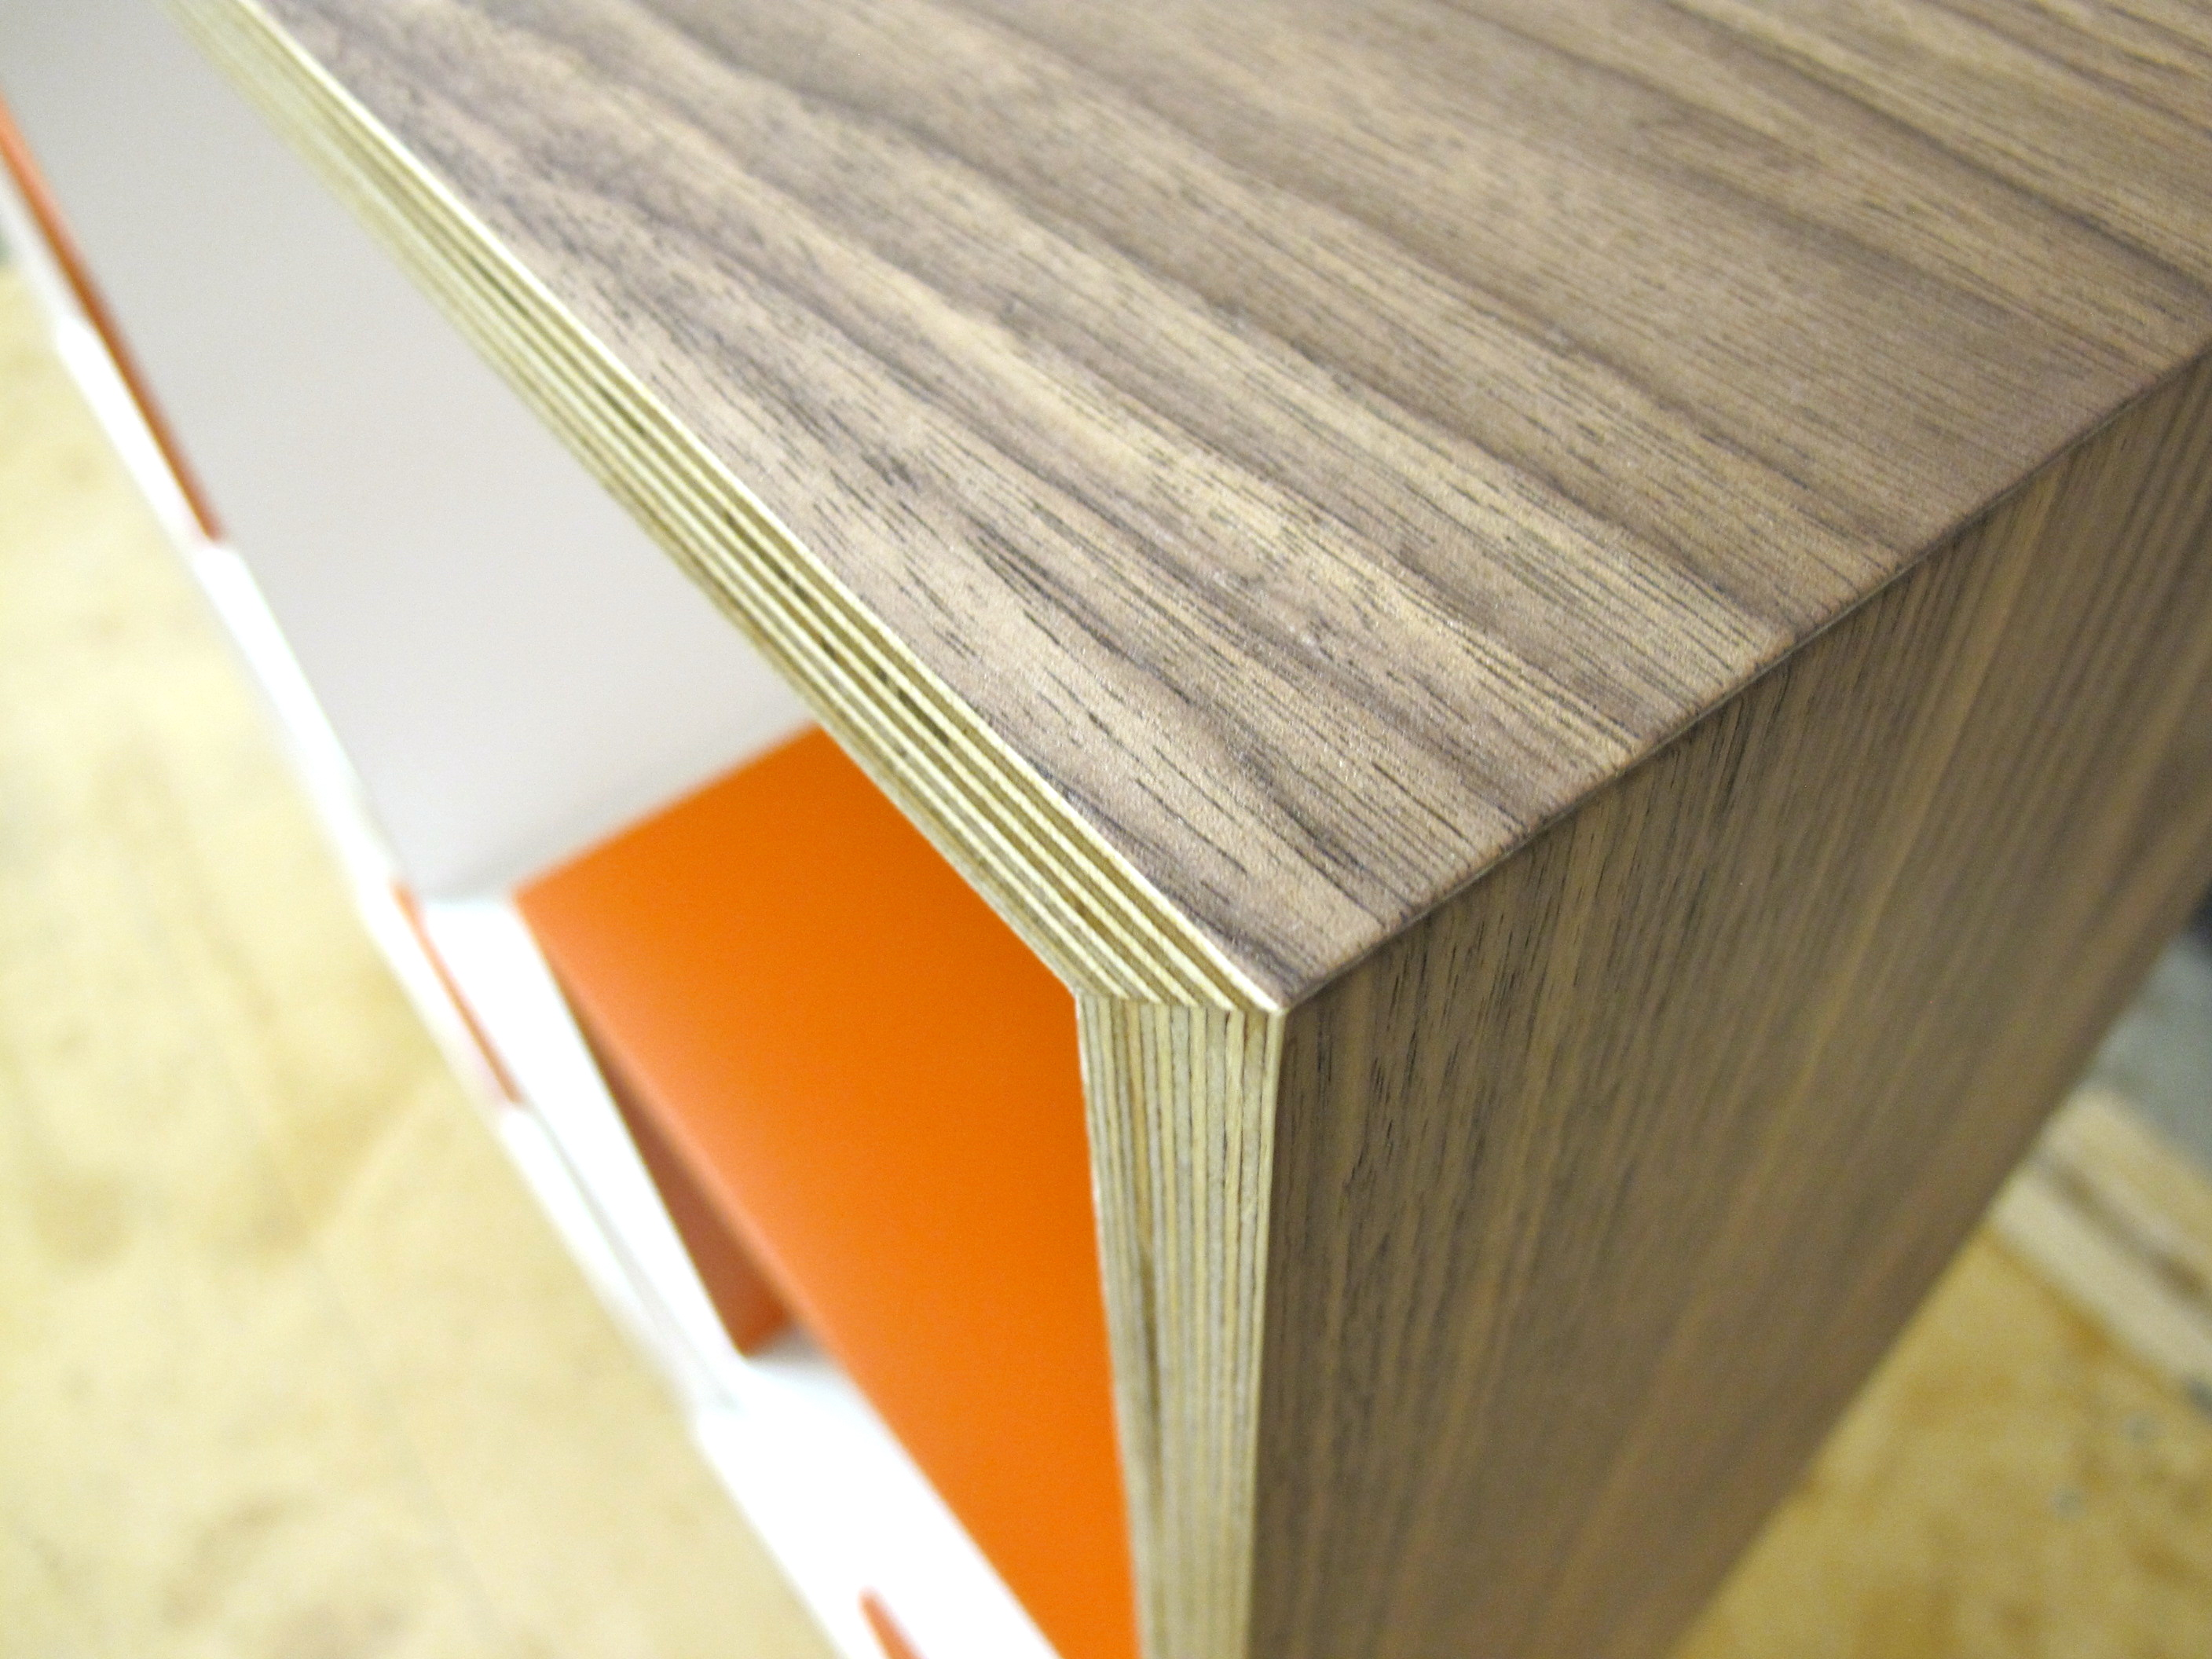 walnut veneered plywood